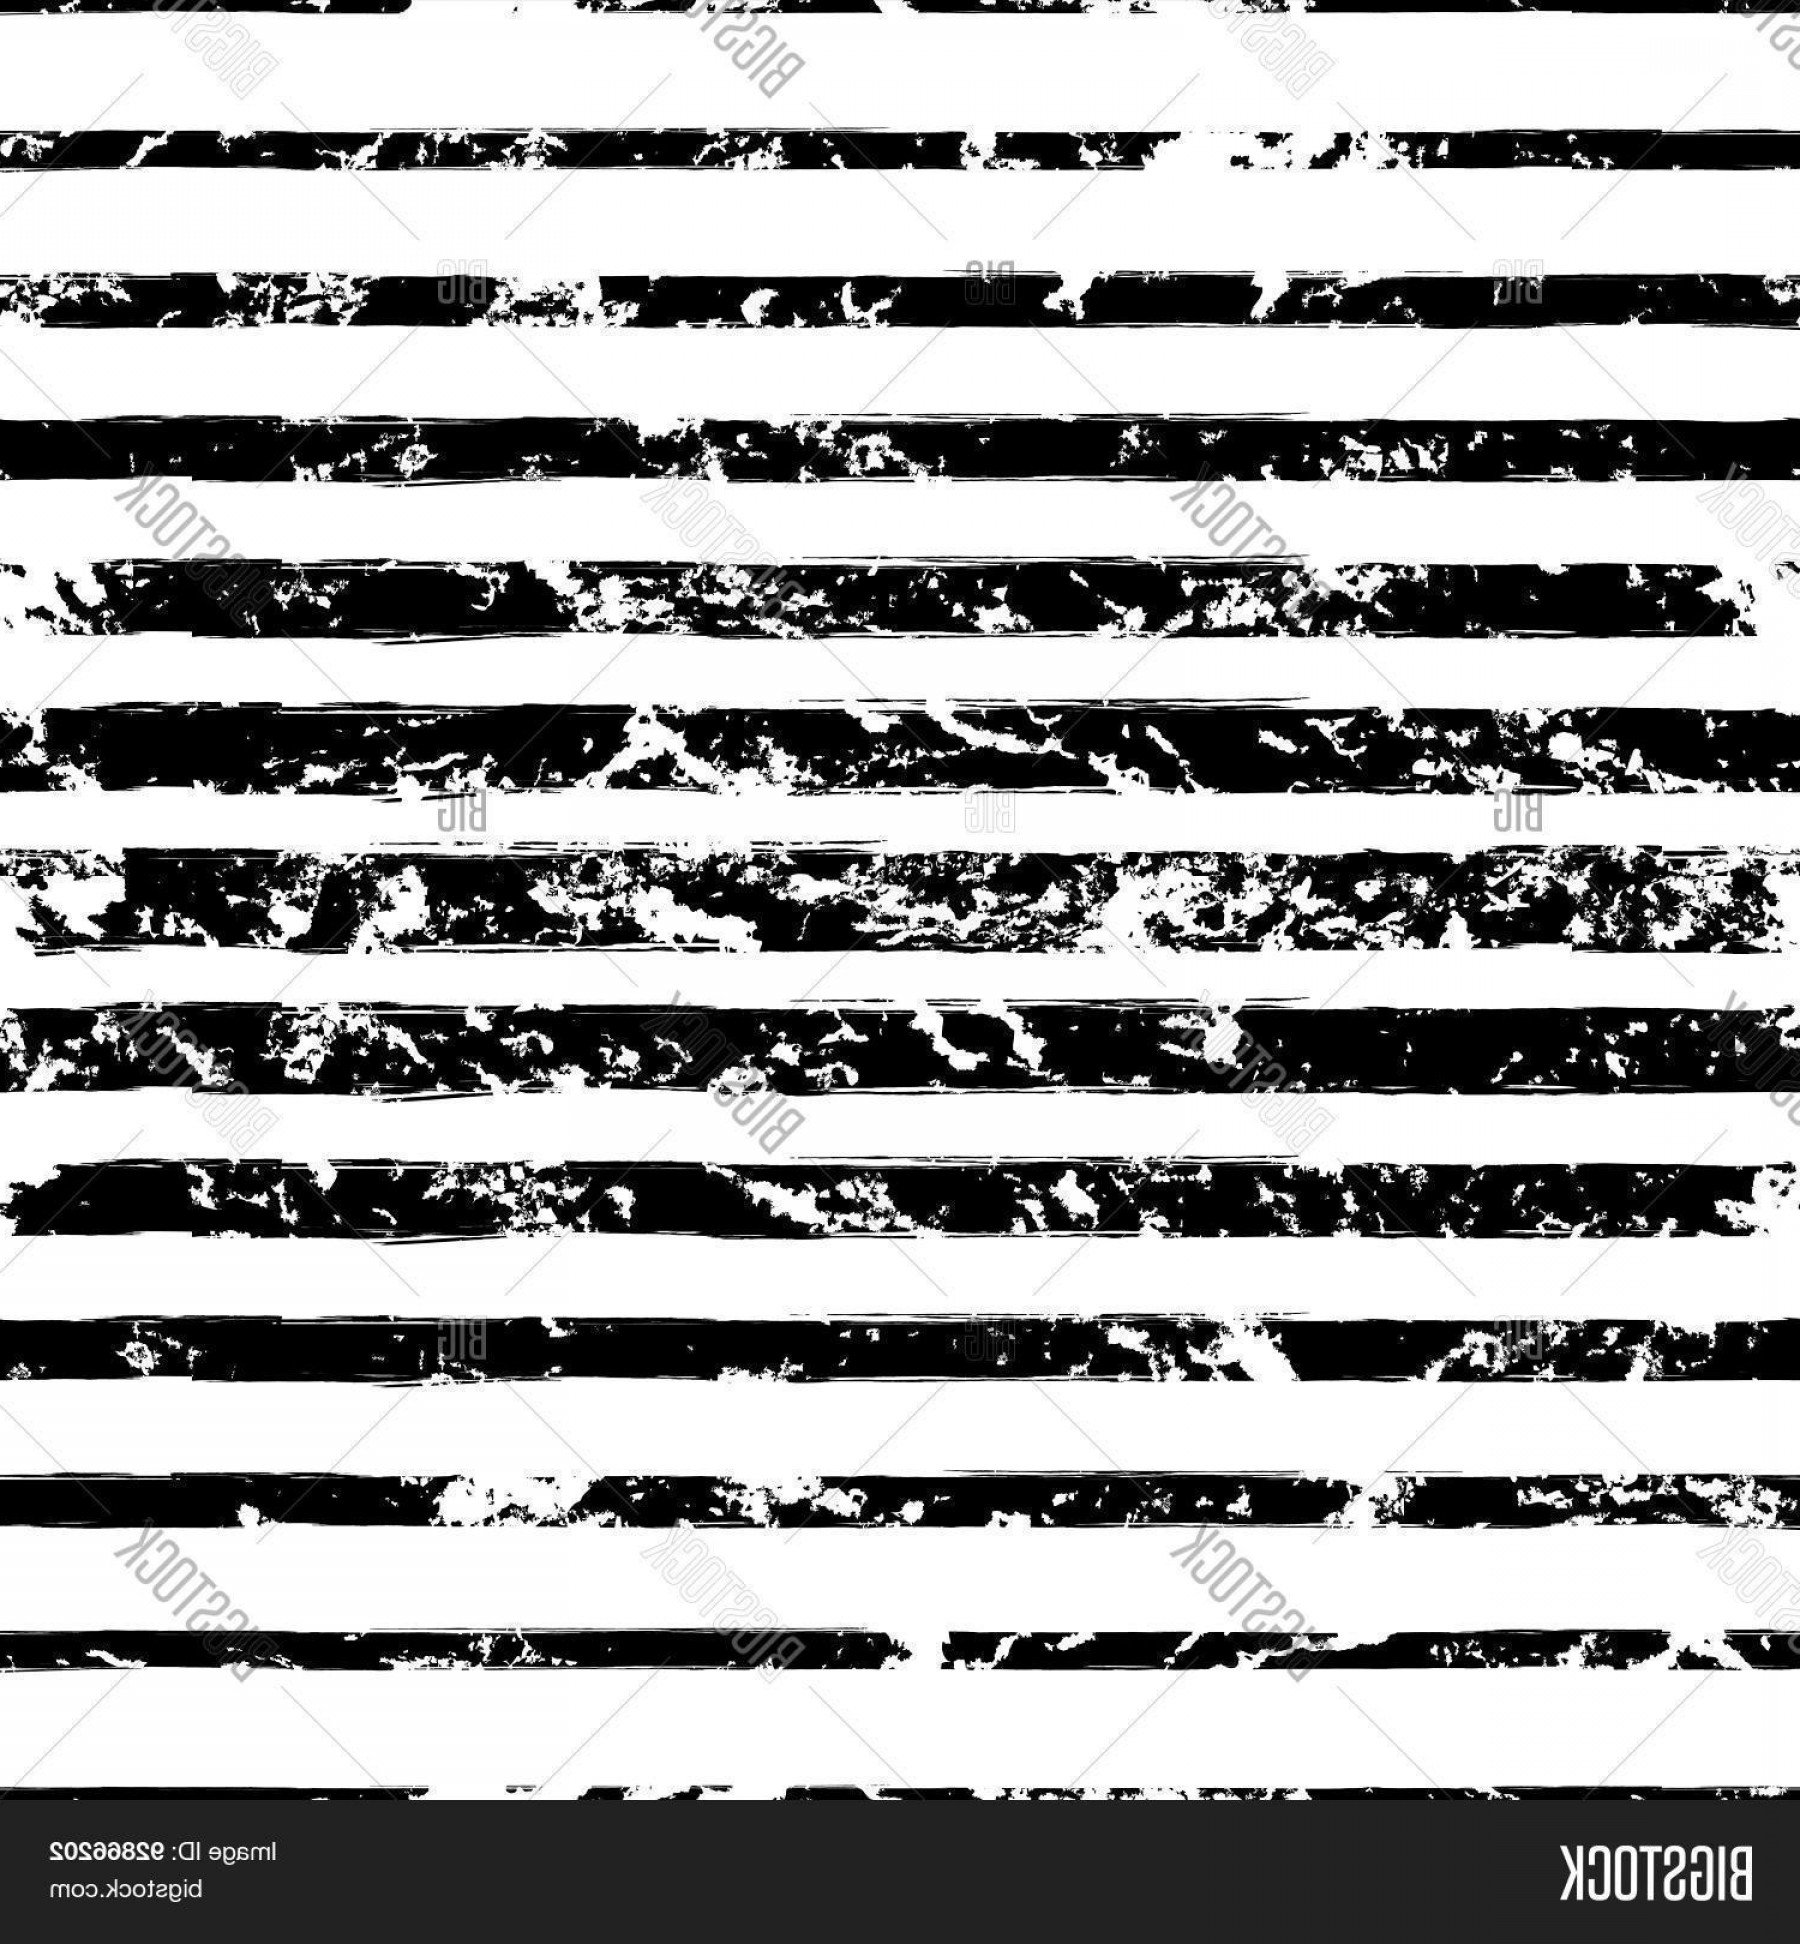 Grunge Stripes Vector: Stock Vector Vector Watercolor Different Sized Stripes Grunge Seamless Pattern Hand Drawn Abstract Black And Whi